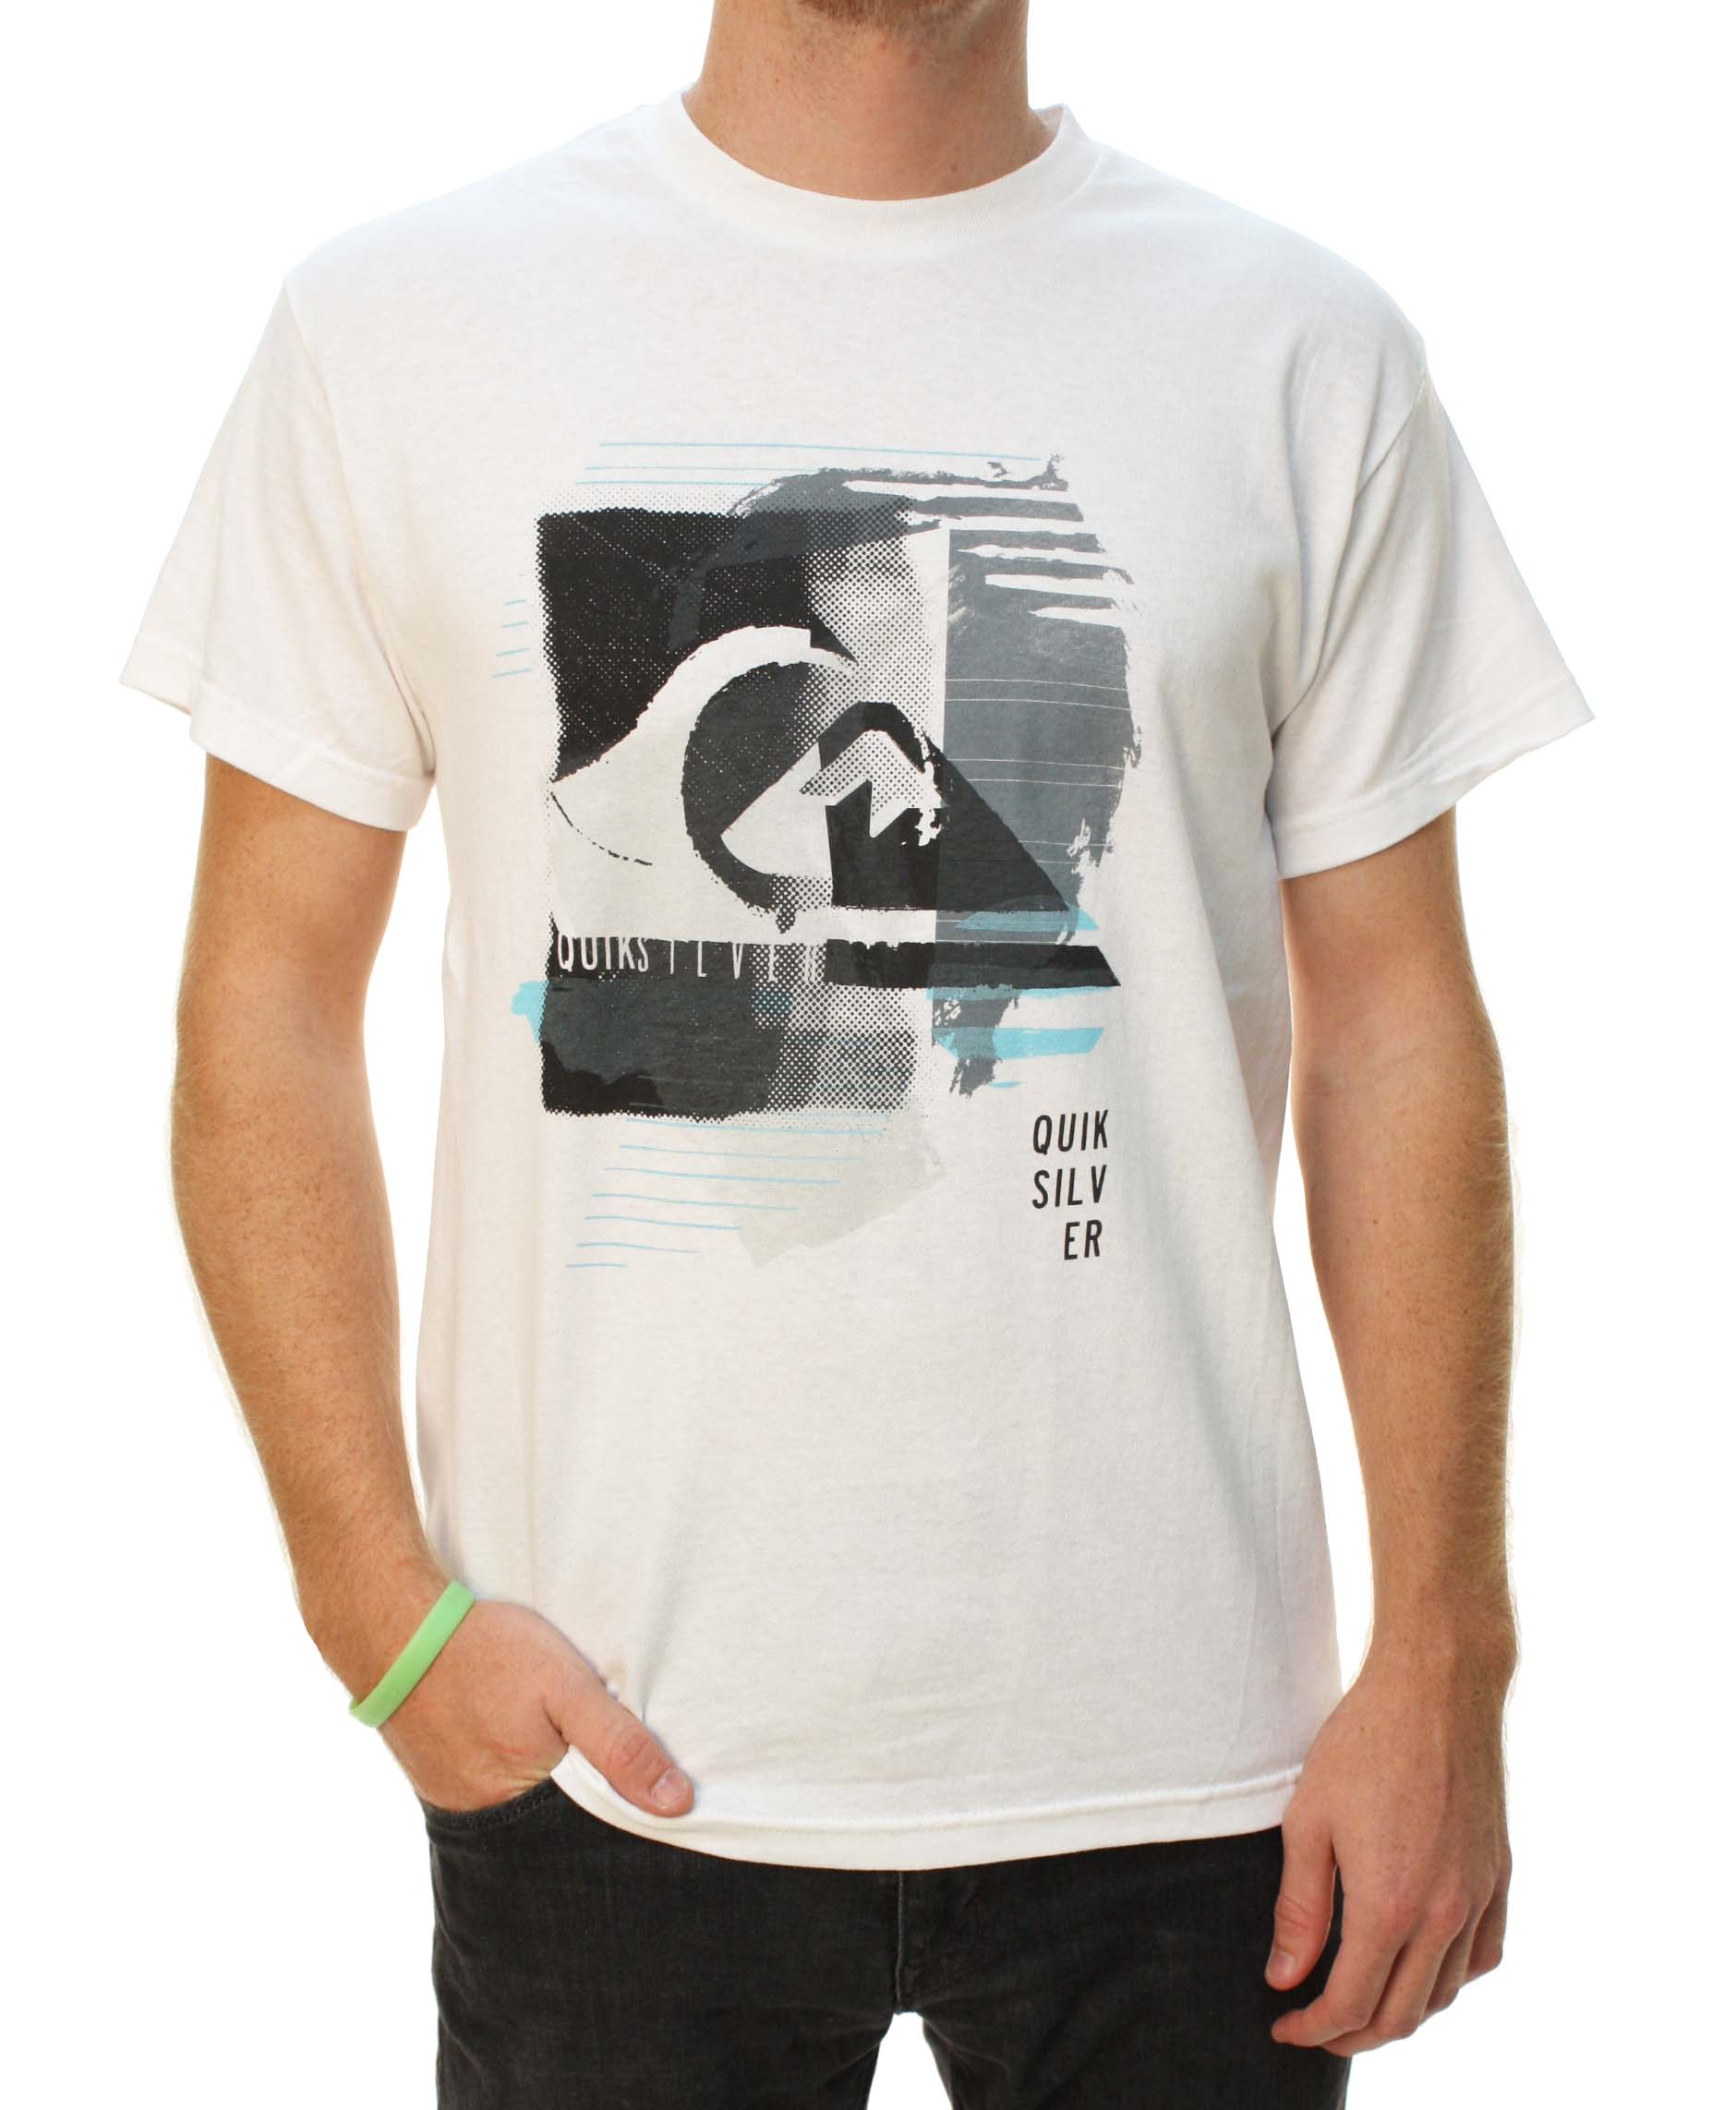 Quiksilver Men's Tenement MT0 Short Sleeve Graphic T-Shirt at Sears.com